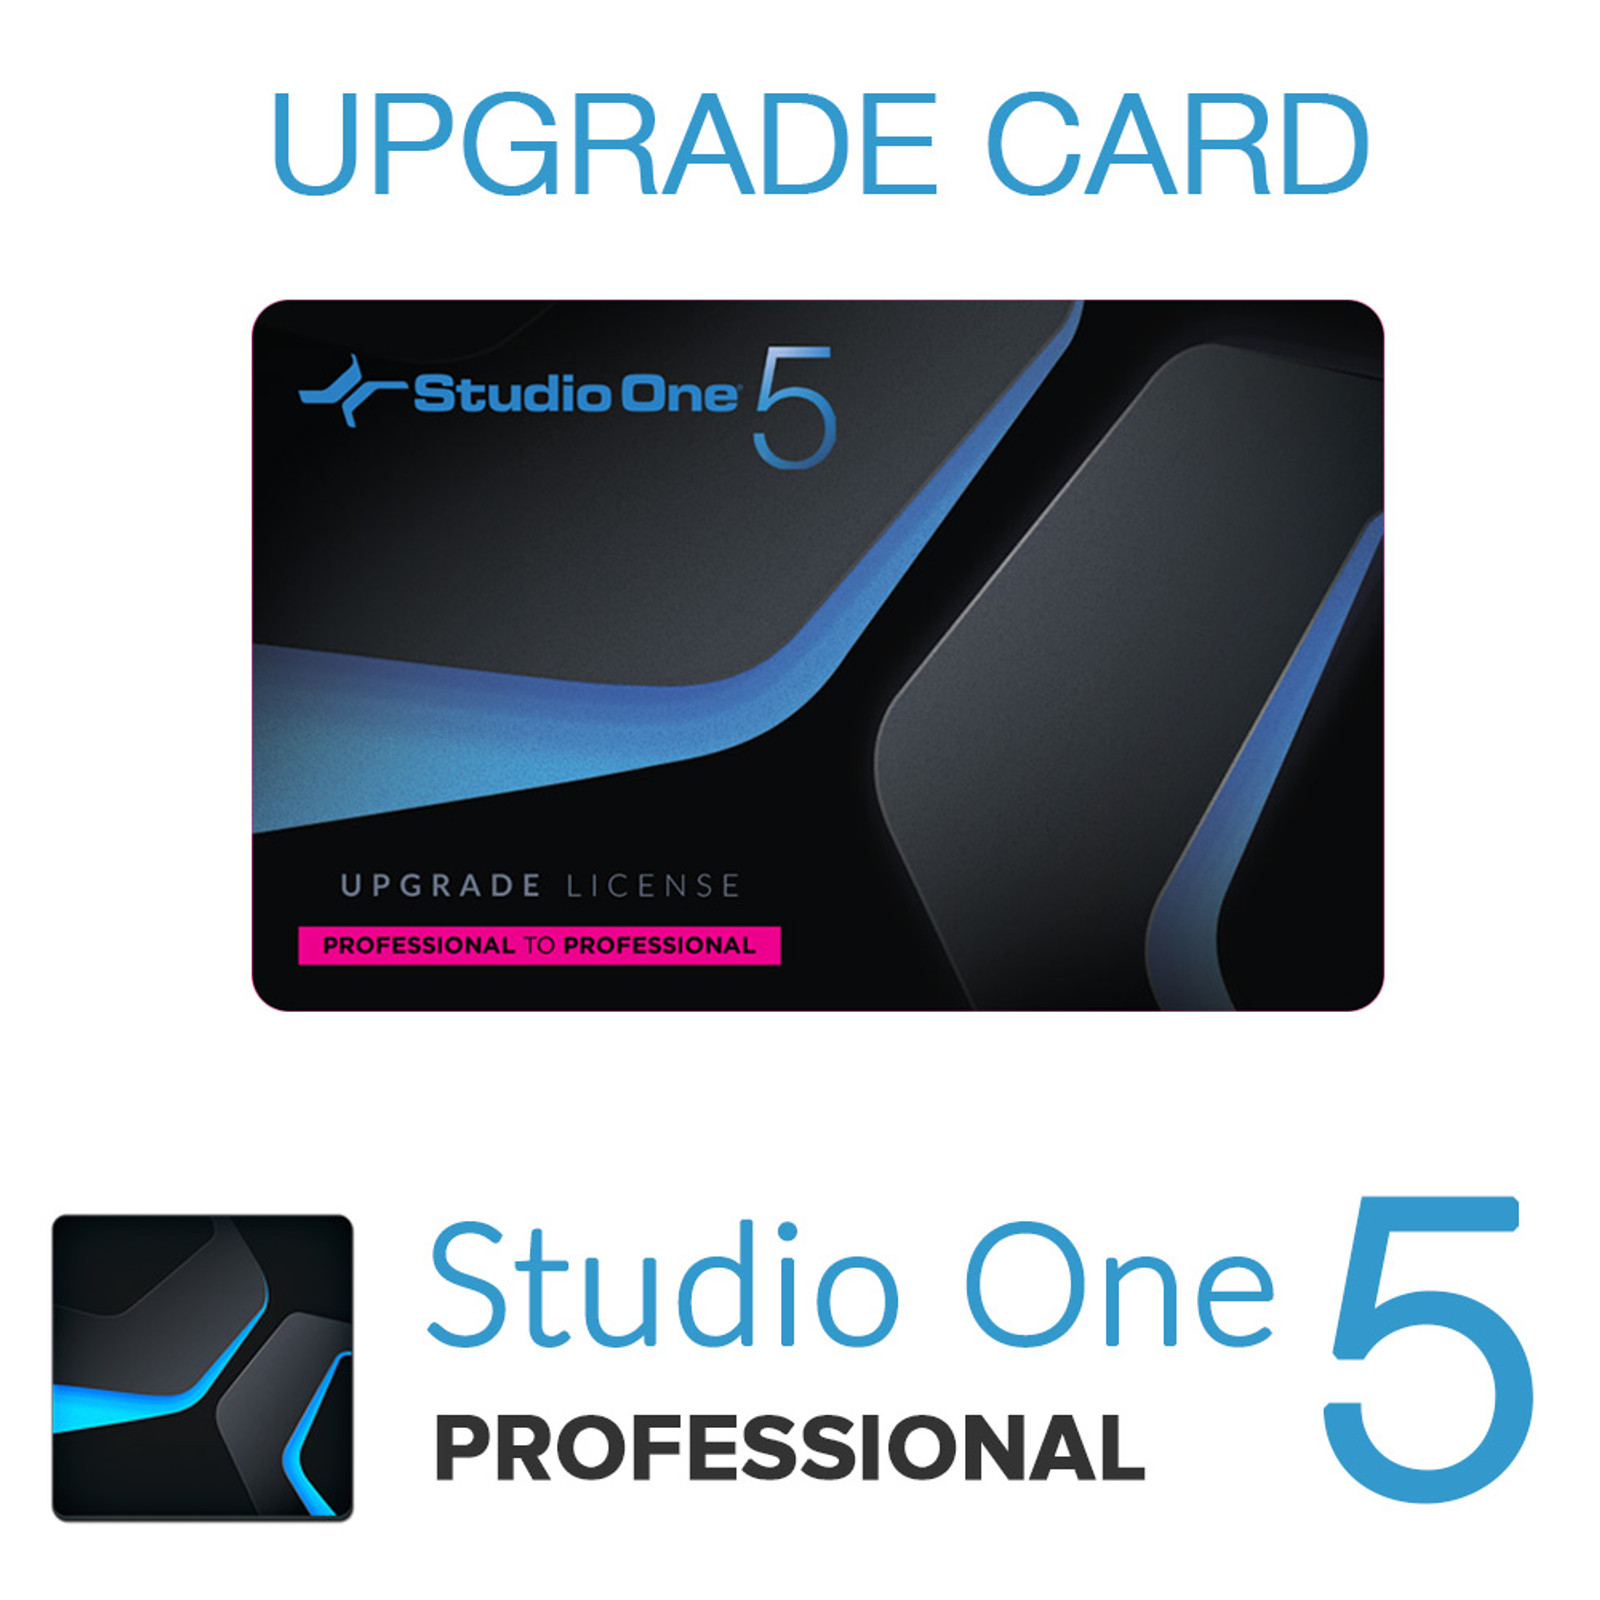 Studio One 5 Pro to Pro Upgrade Card